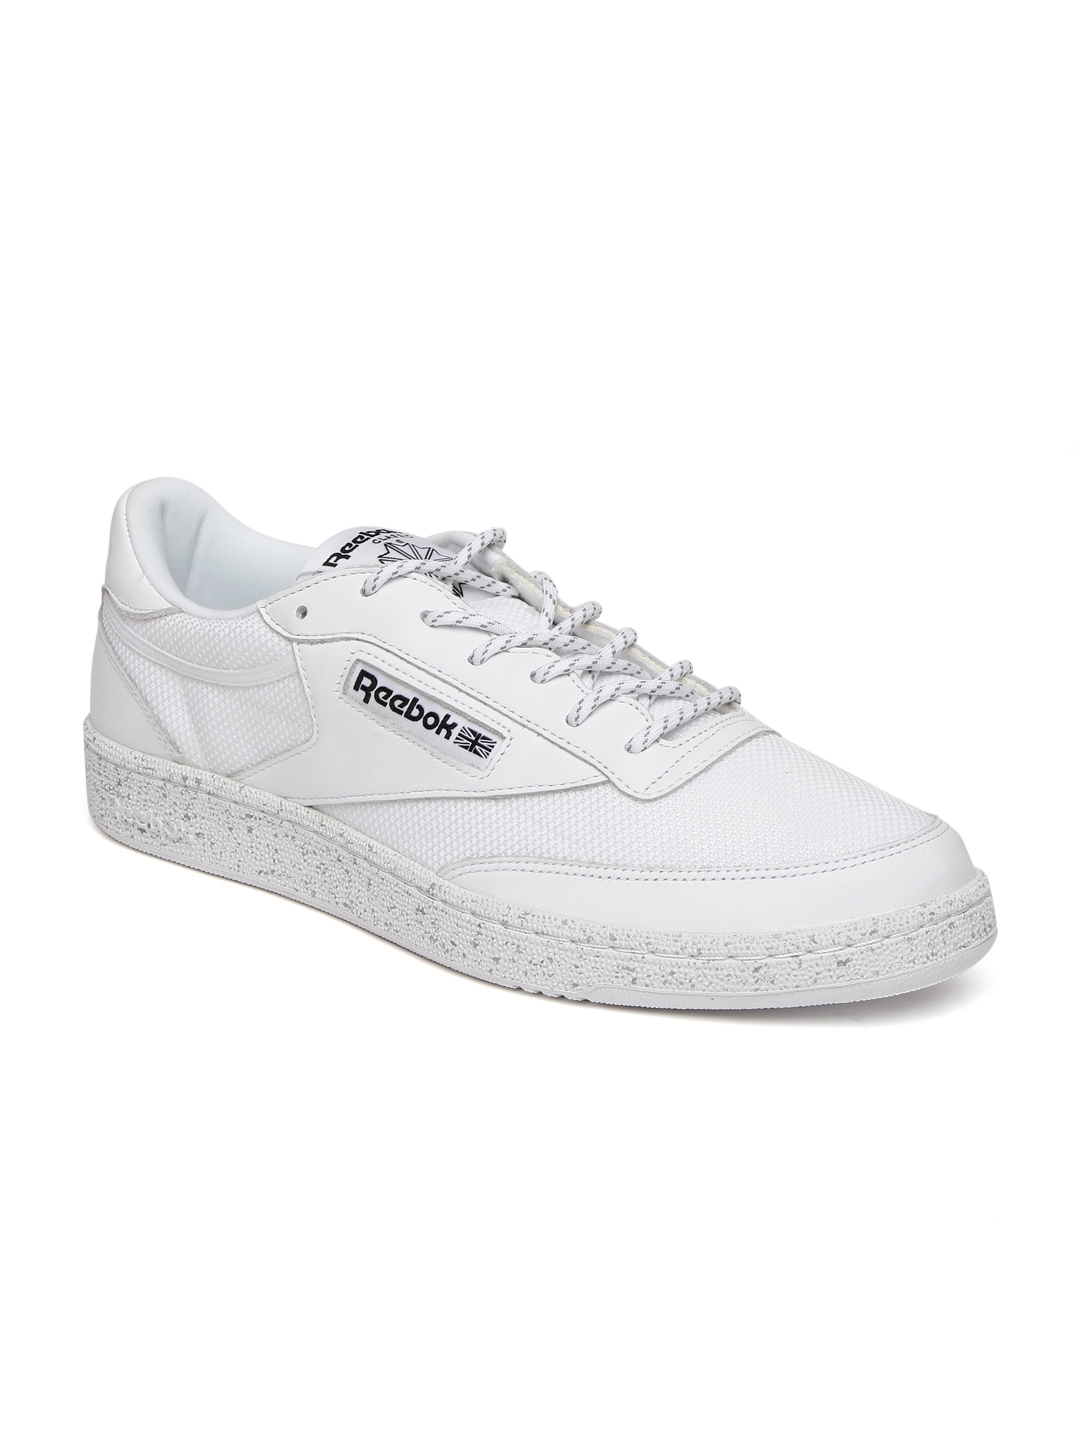 73c7c4b2 Buy Reebok Men White Club C 85 ST Leather Sneakers - Casual Shoes ...